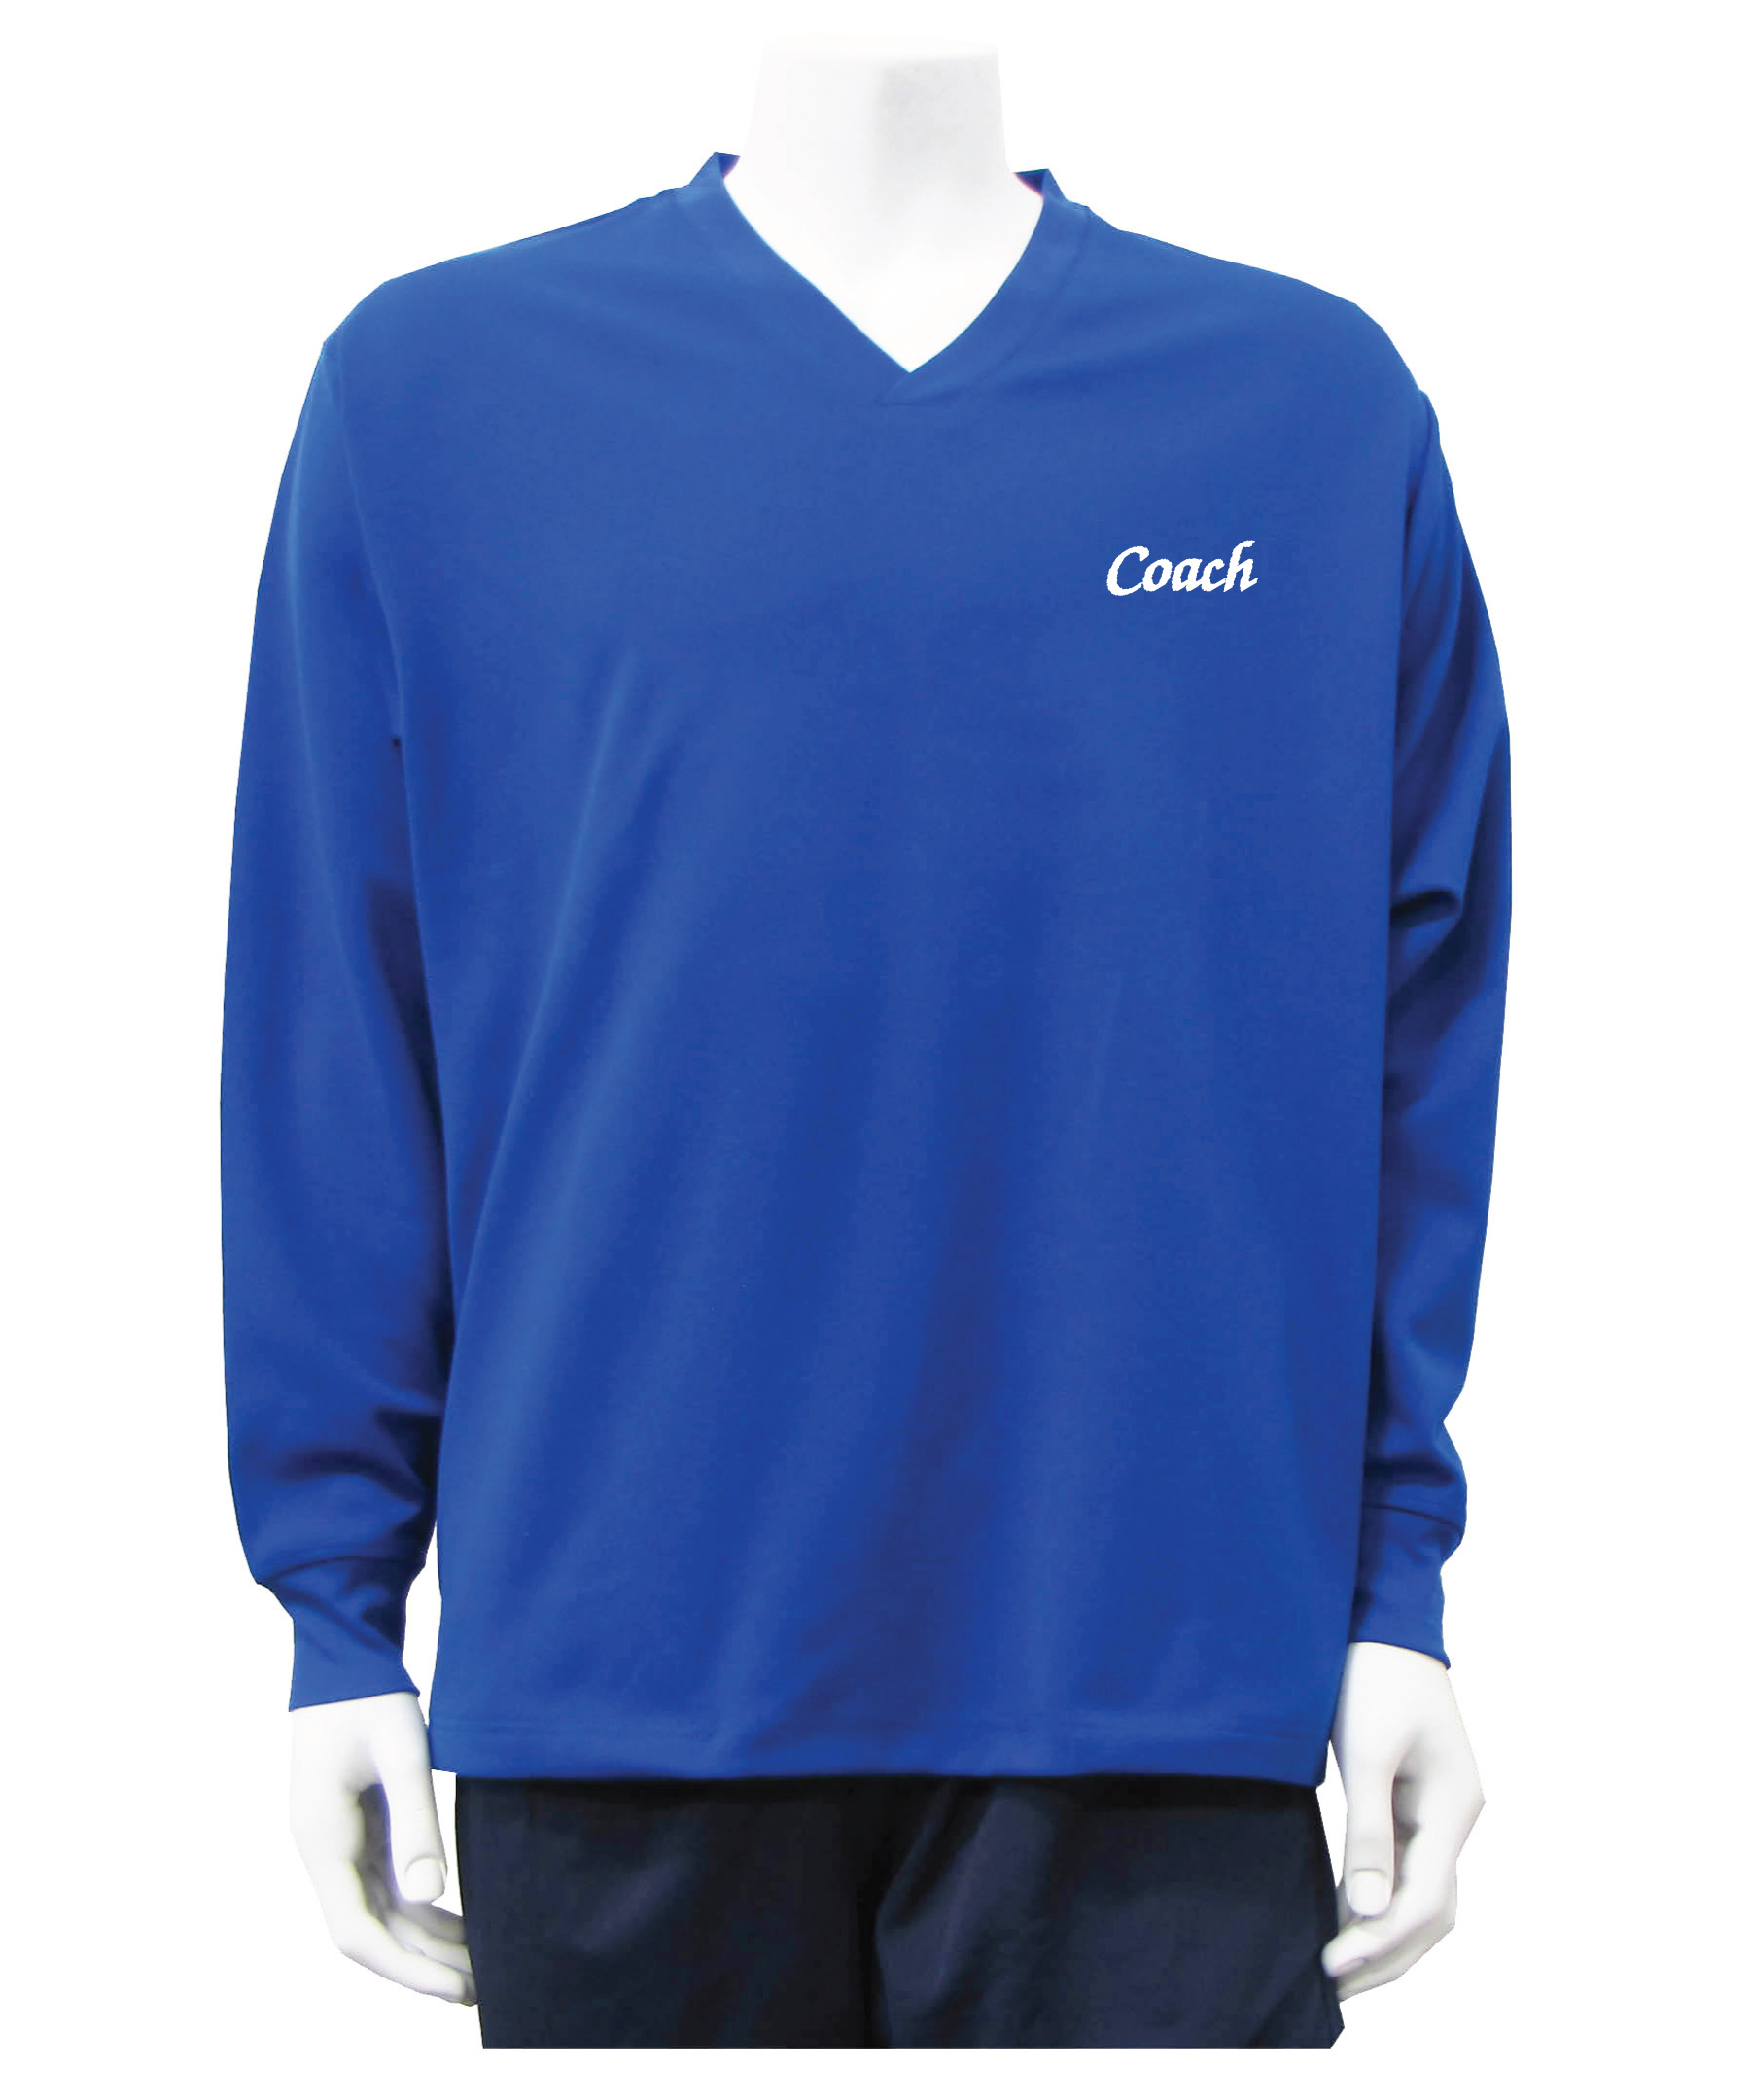 Coach pullover shirt jacket in royal by Code Four Athletics